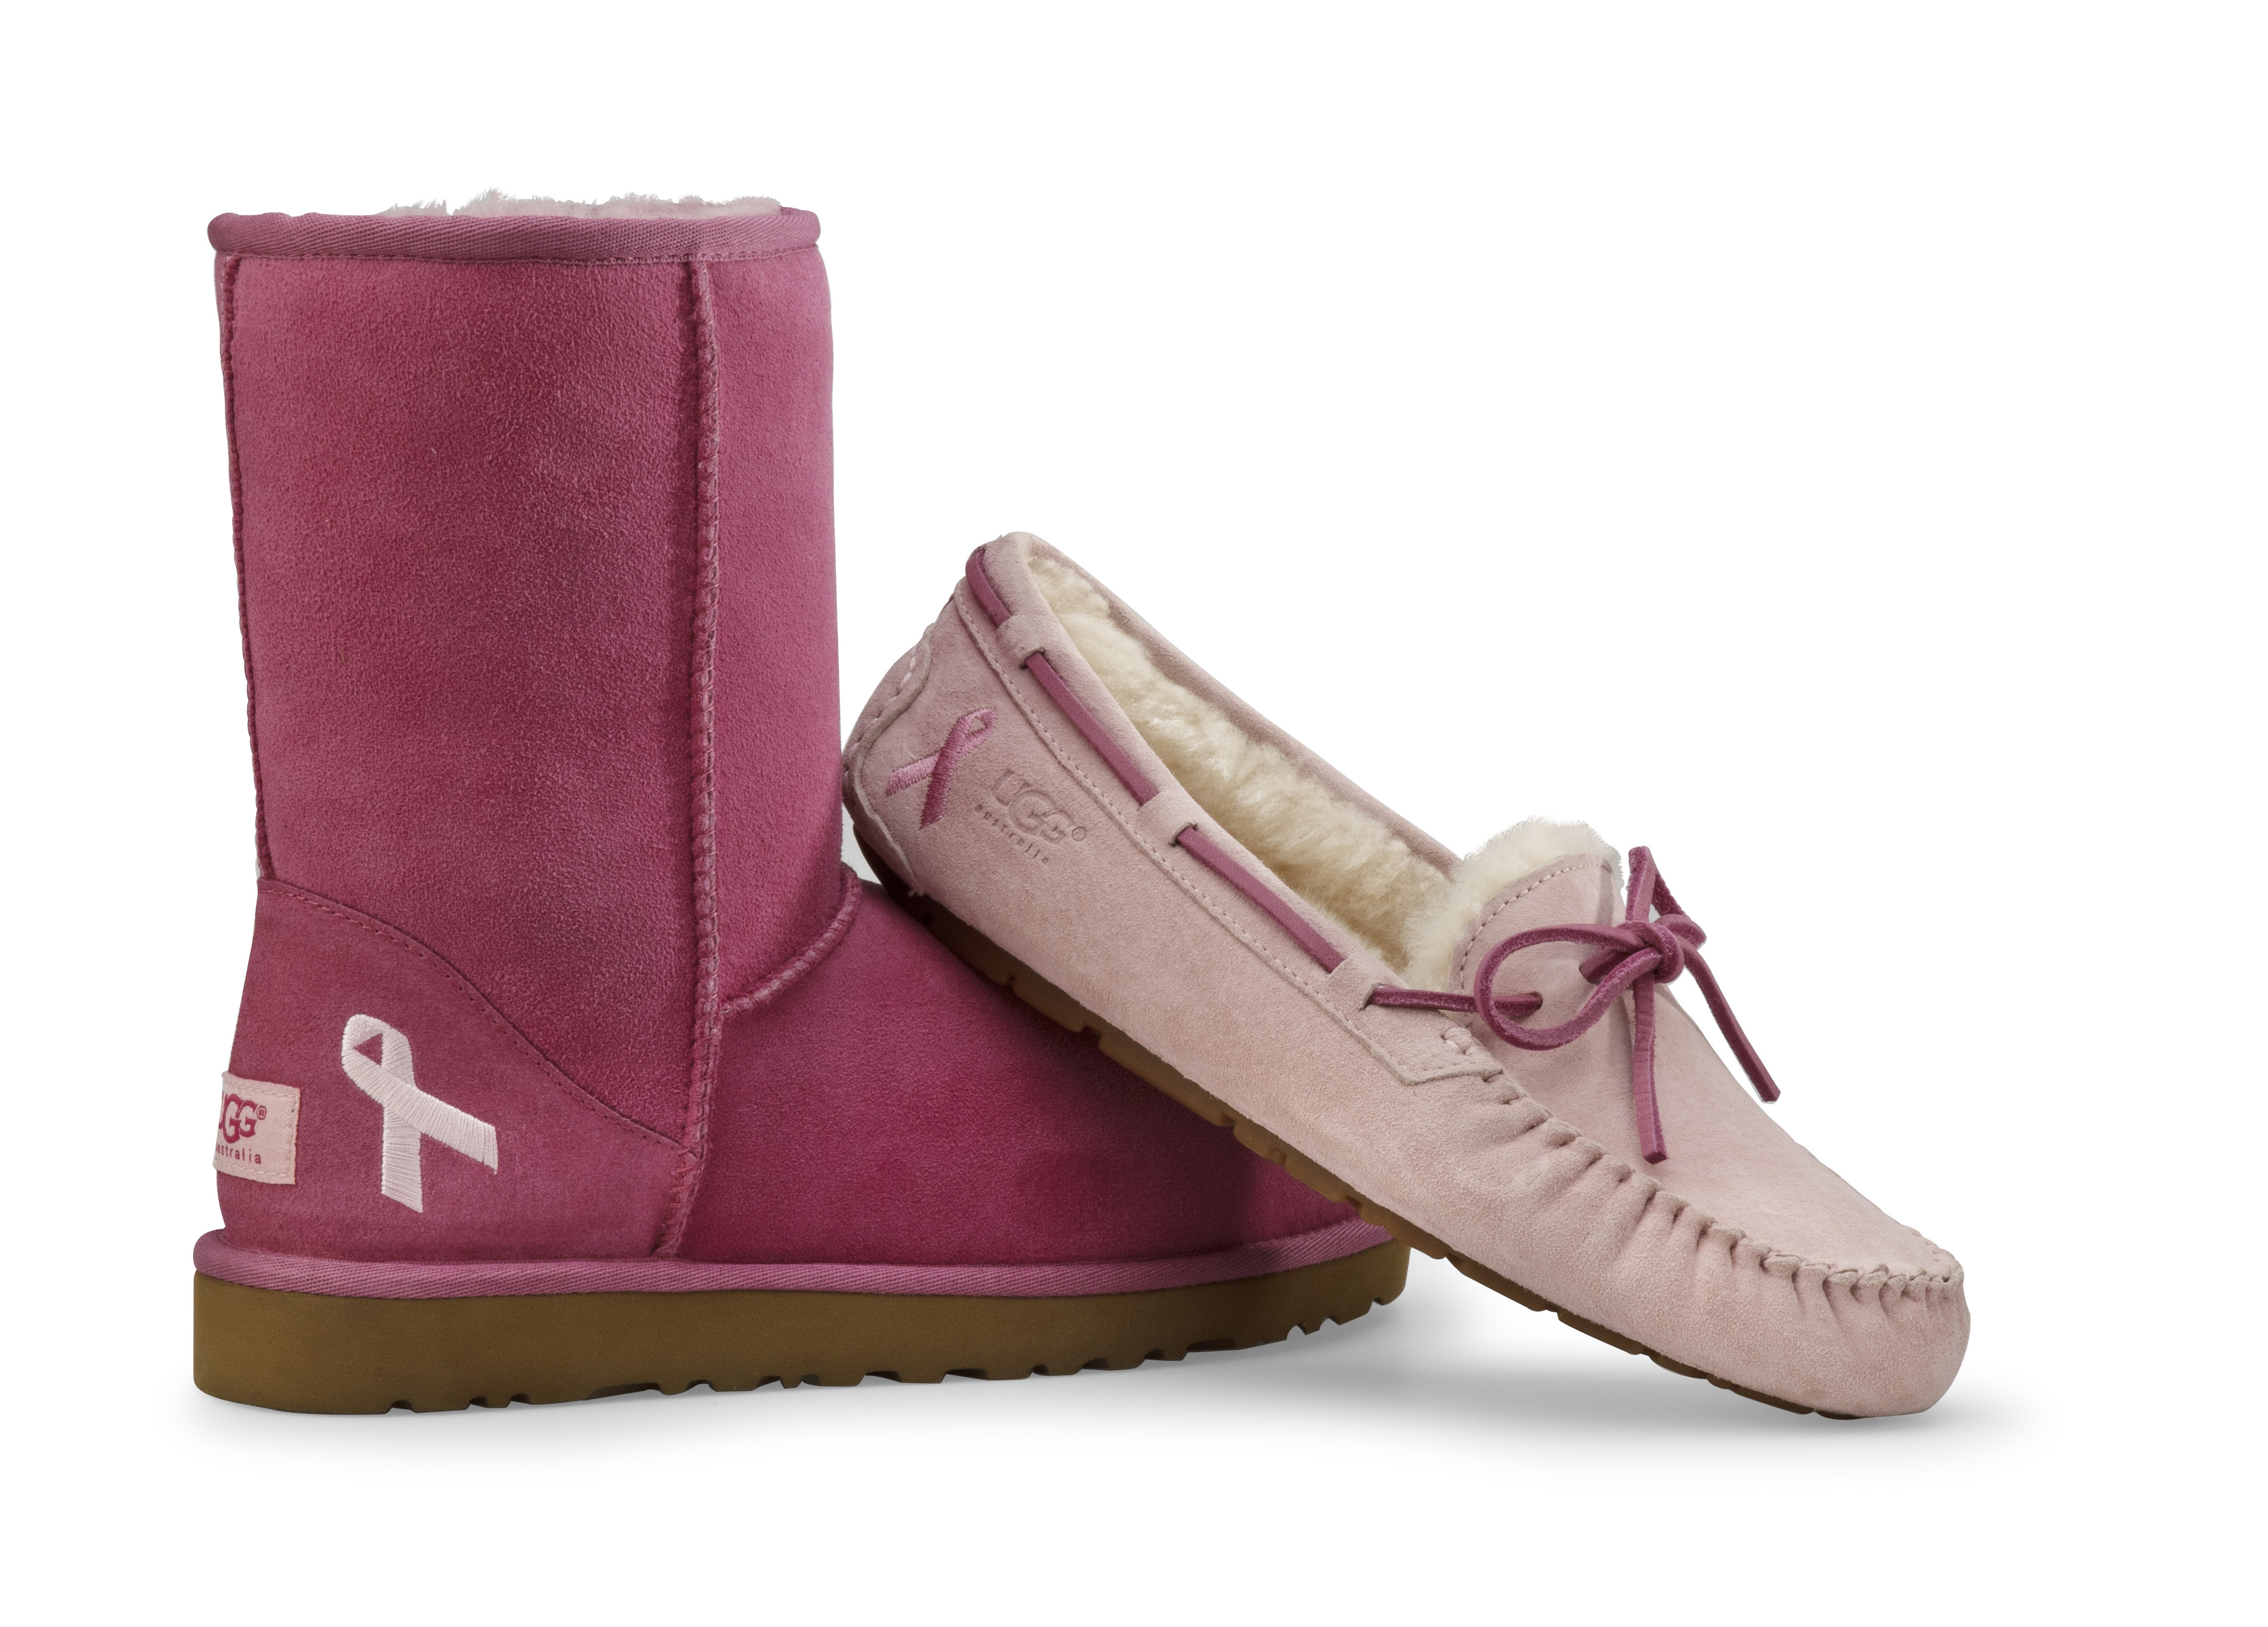 5b27298f7f1 Breast Cancer Uggs The Walking Company - cheap watches mgc-gas.com